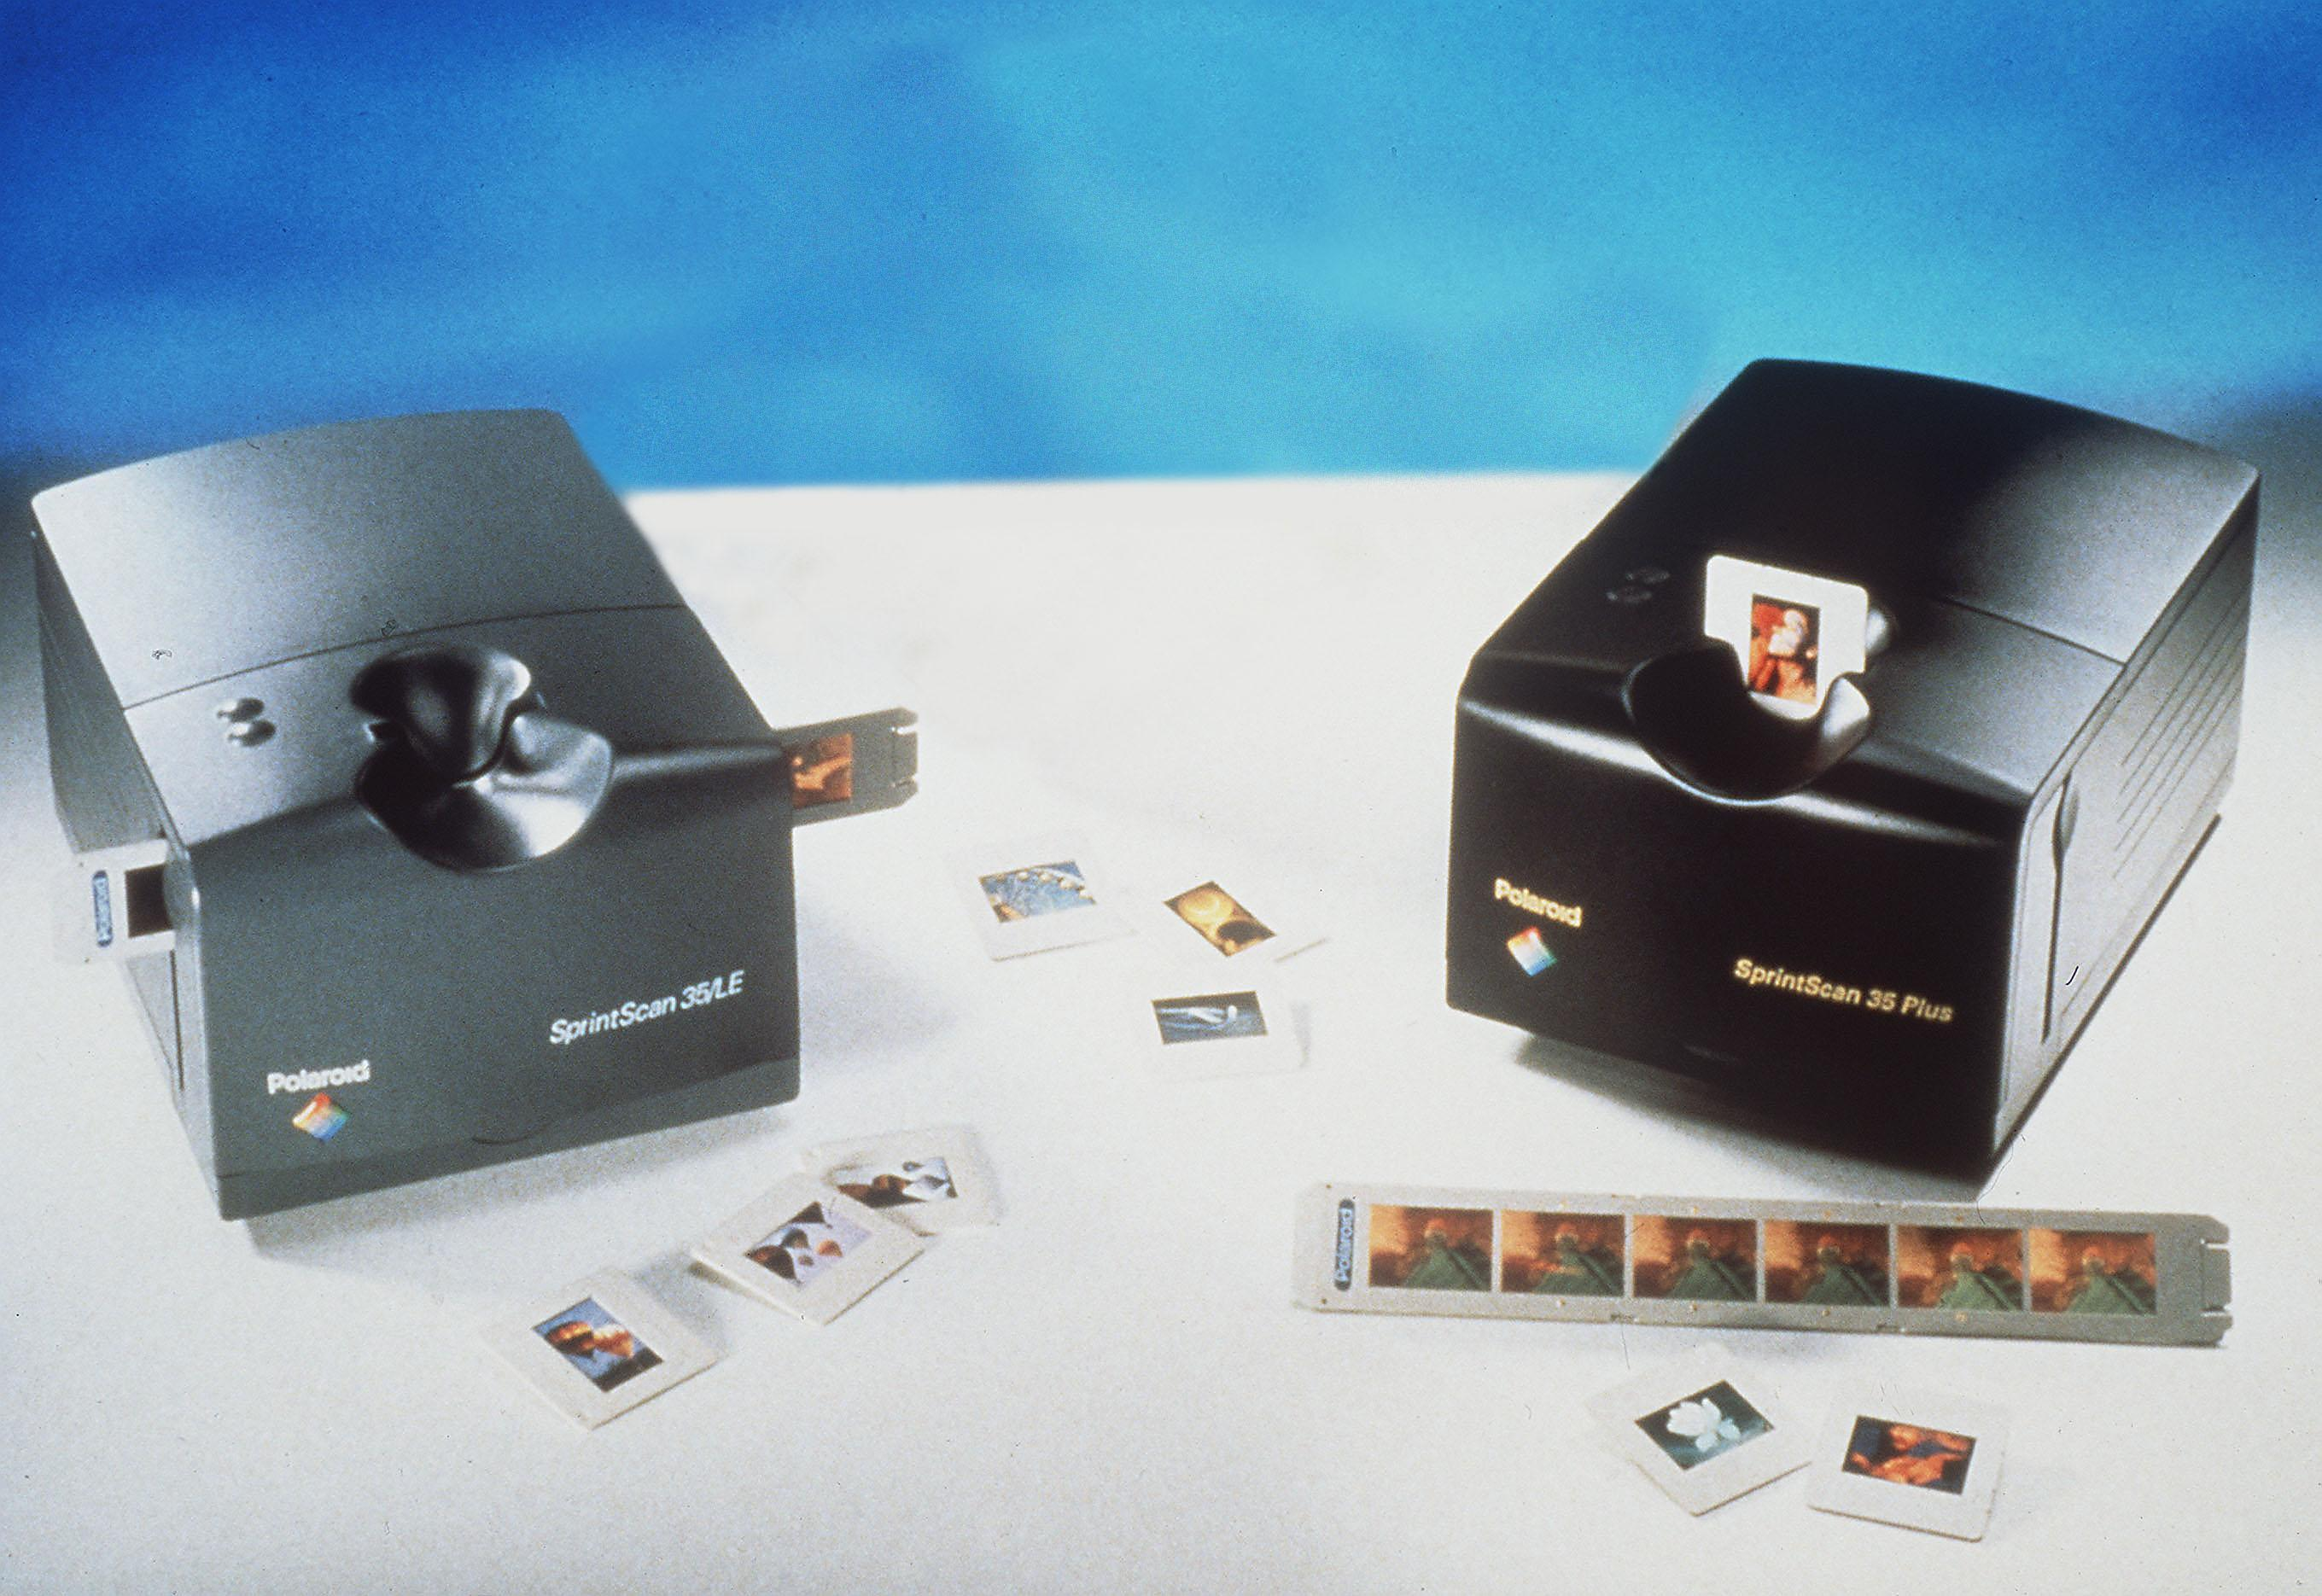 POLAROID SPRINTSCAN 35 PLUS WINDOWS VISTA DRIVER